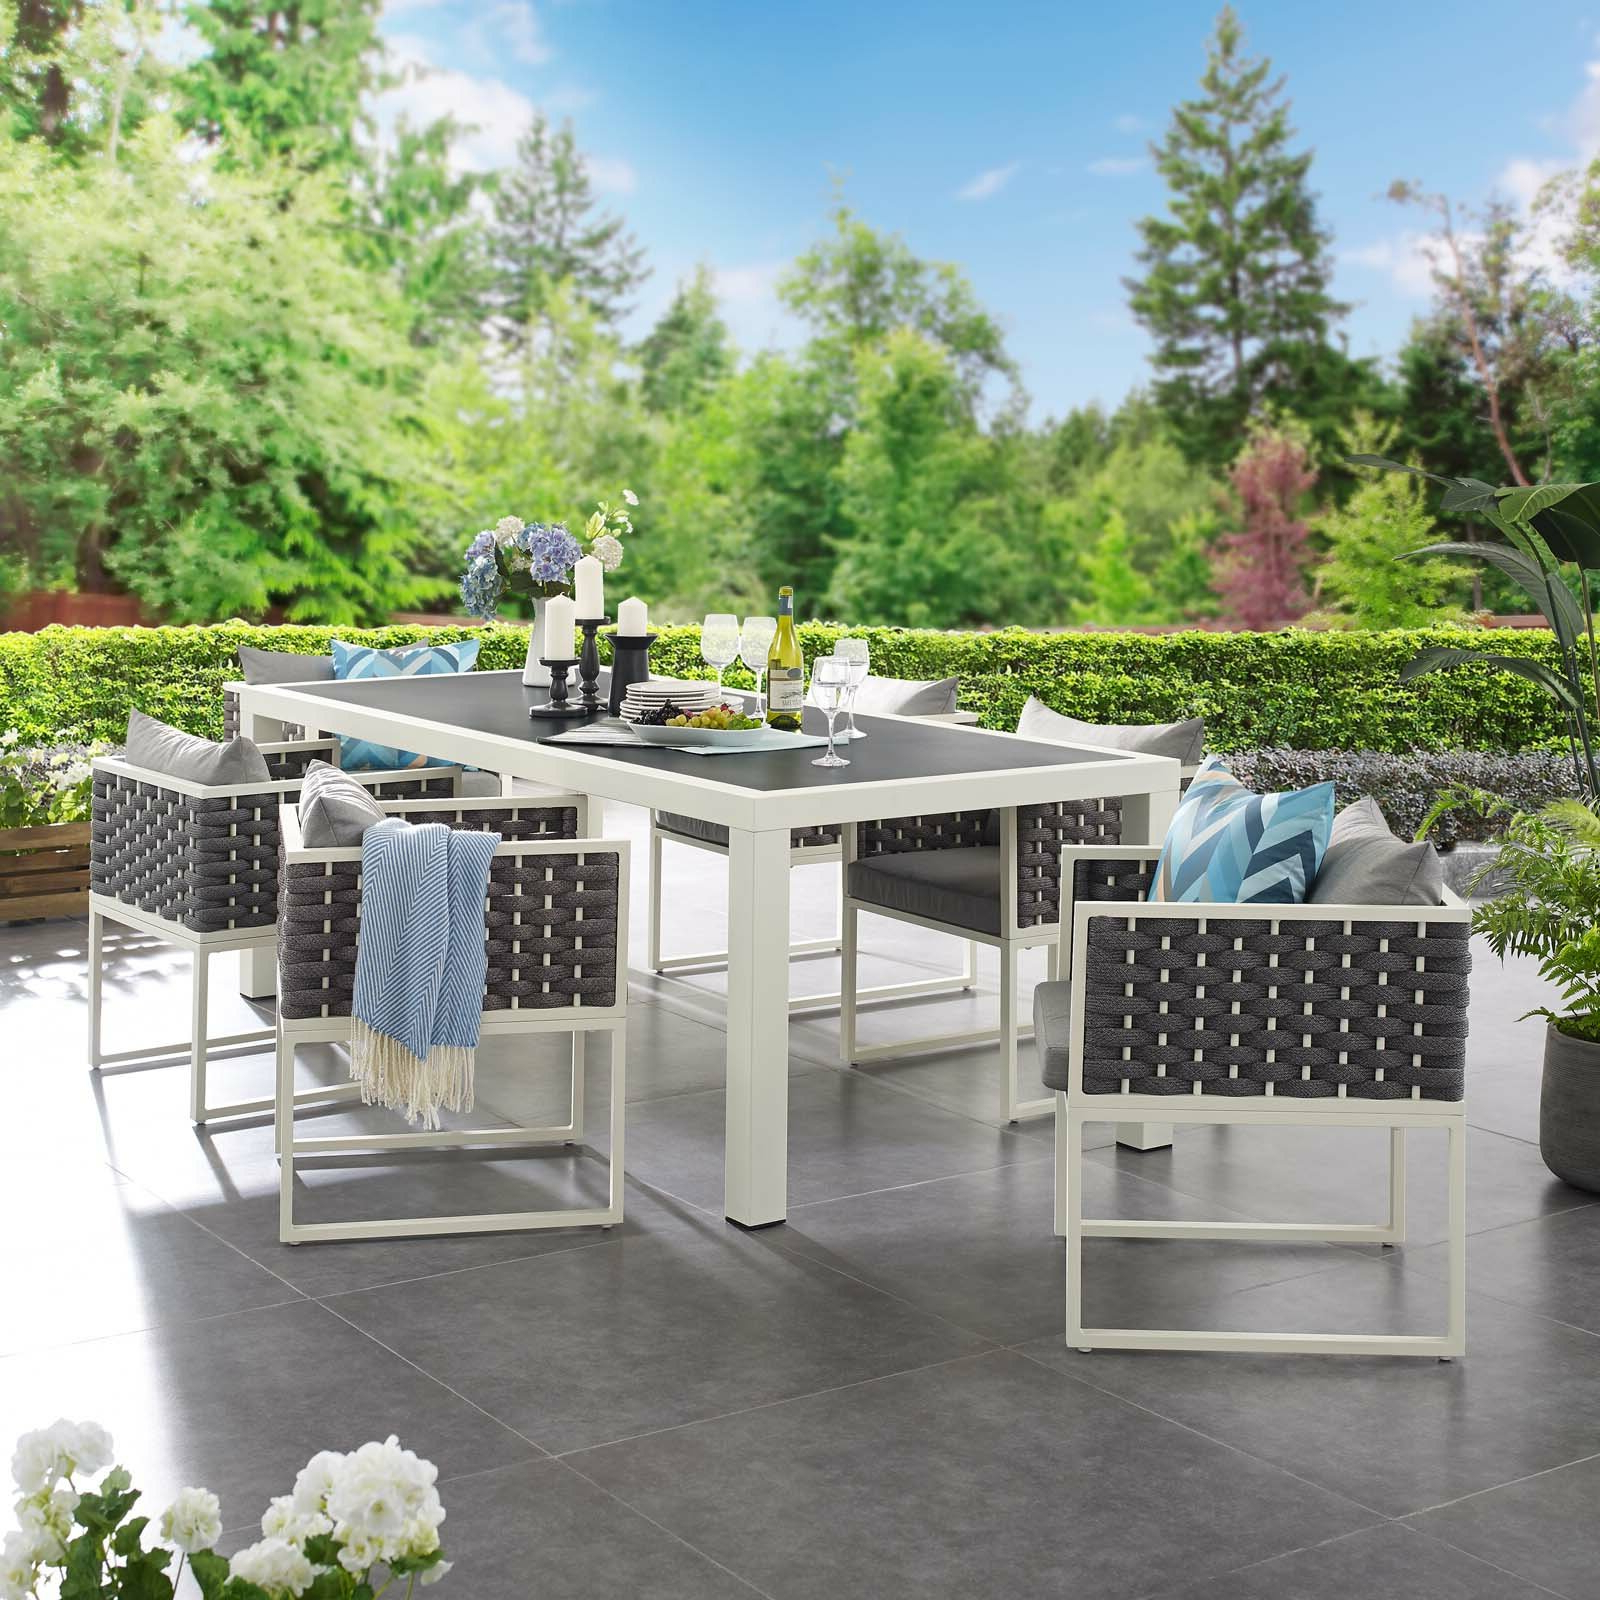 Rossville Outdoor Patio Sofas With Cushions Pertaining To Widely Used Rossville 7 Piece Dining Set With Cushions (View 9 of 25)